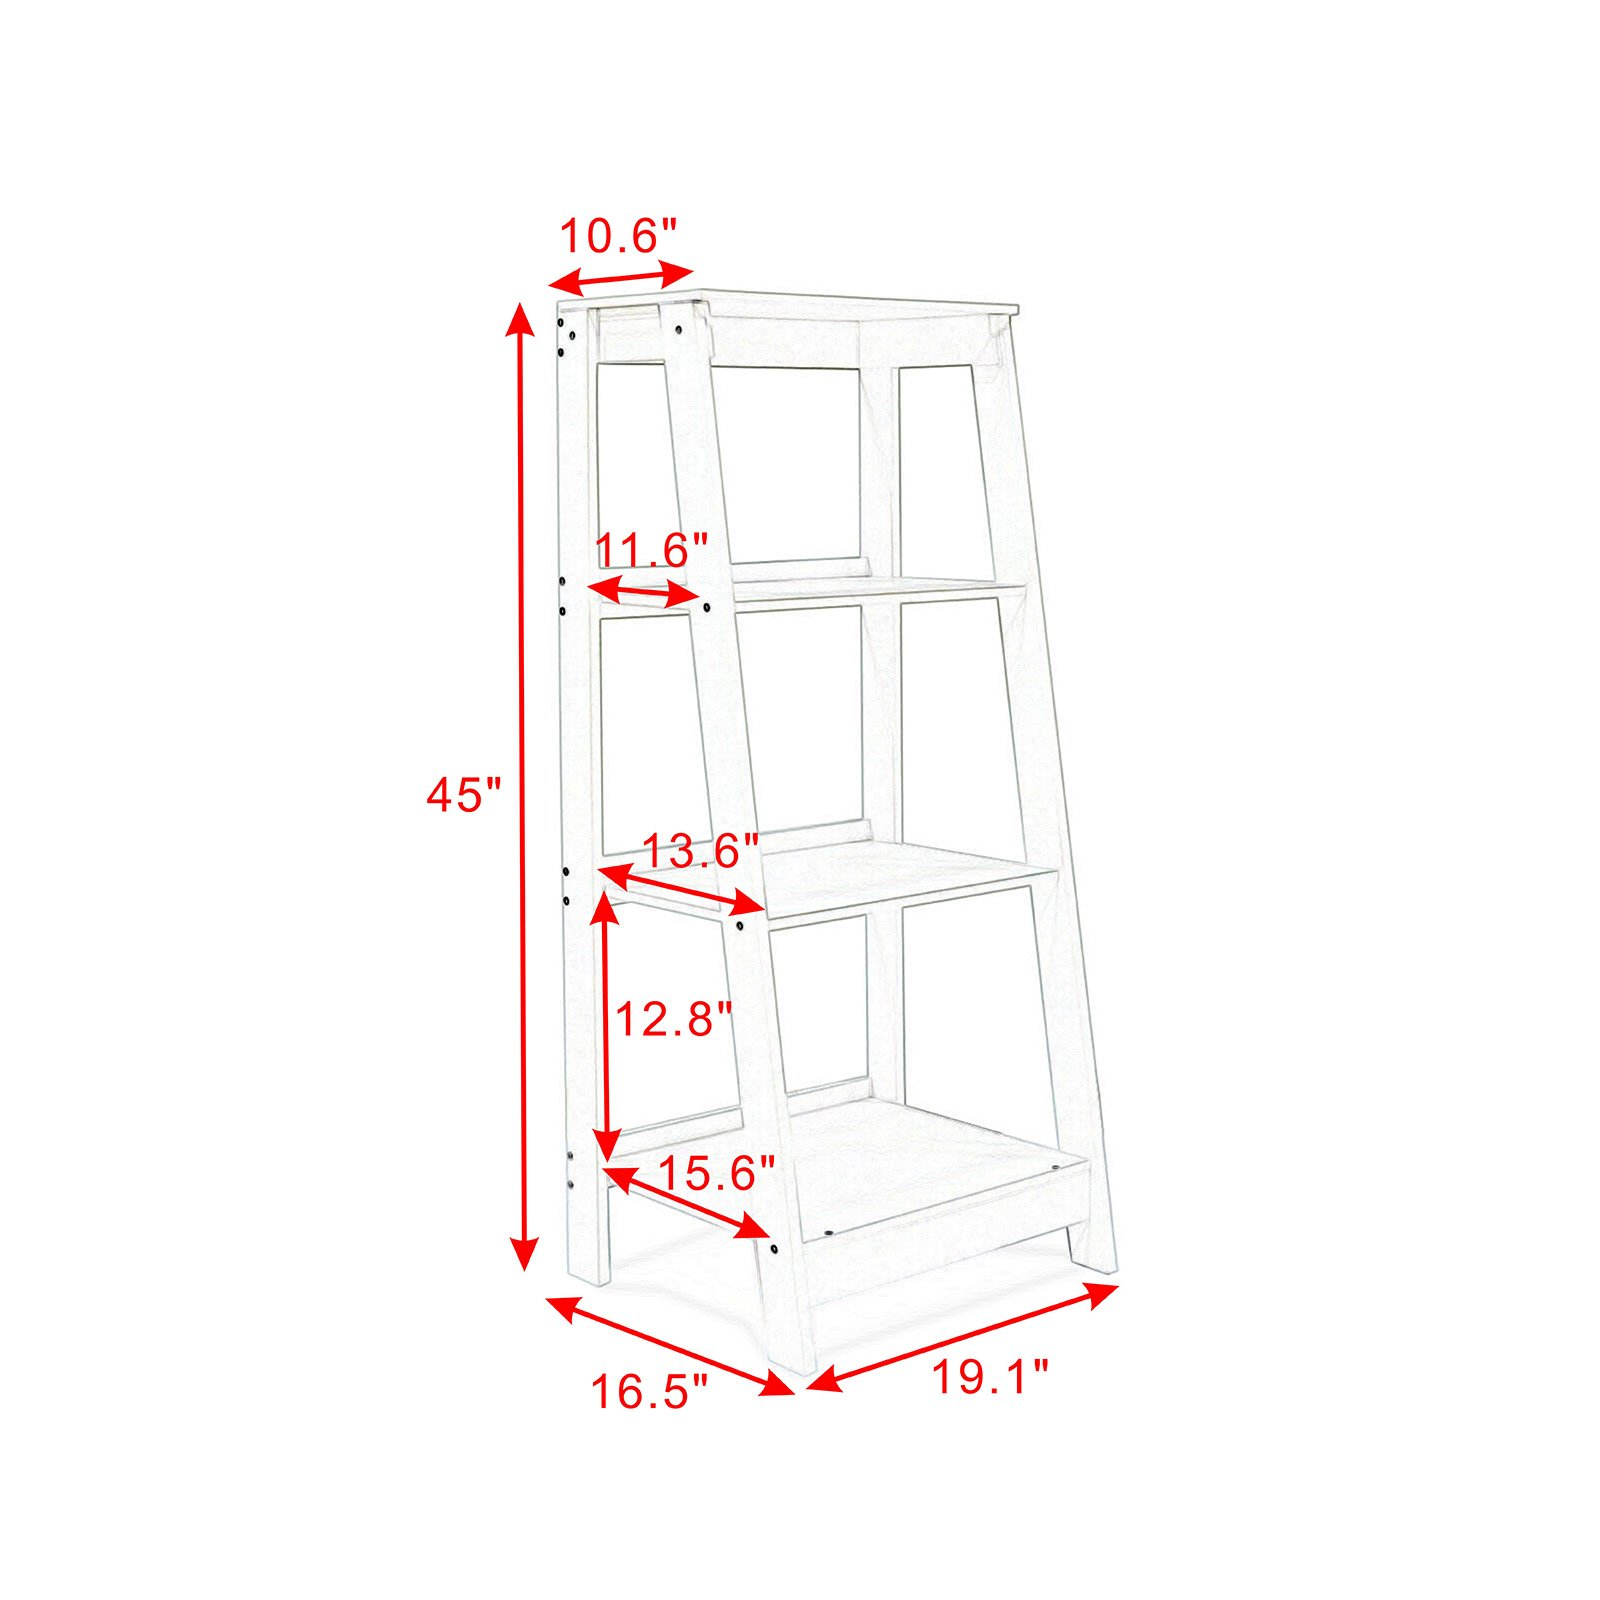 Coismo 3-Tier Ladder Functional Shelf Wooden Home Office Storage Bookcase Display, White by Coismo (Image #6)